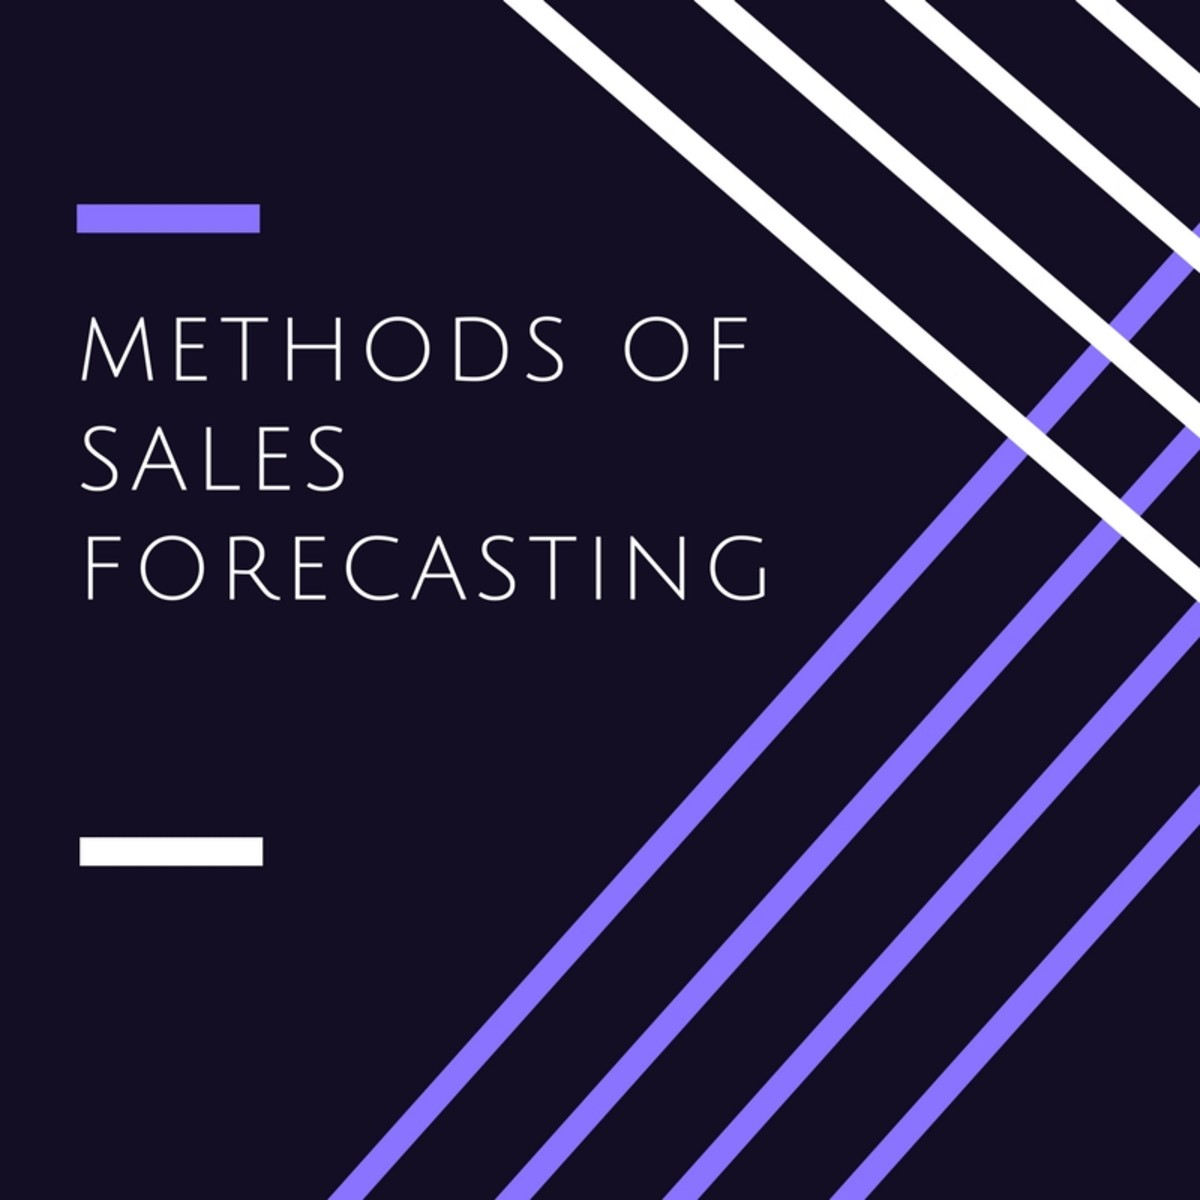 Methods of Sales Forecasting